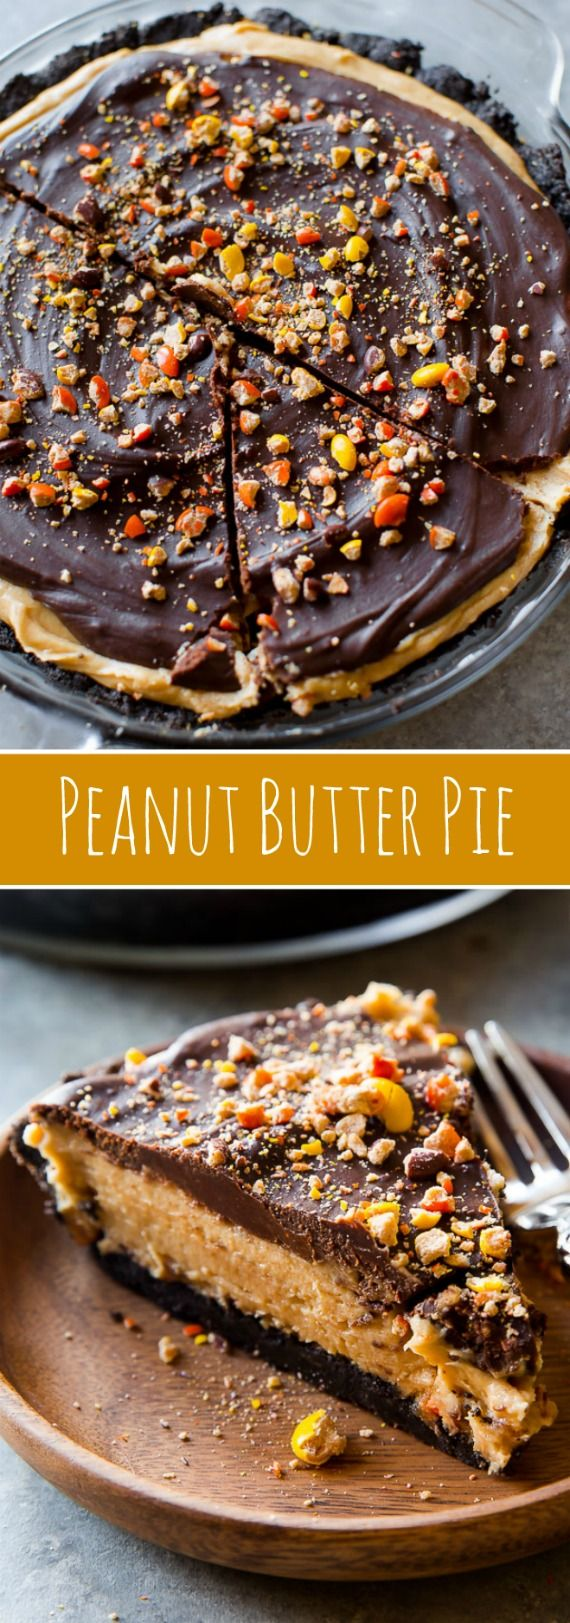 No bake peanut butter pie complete with Oreo crust, Reese's Pieces, rich and thick peanut butter filling, and smooth chocolate ganache!…